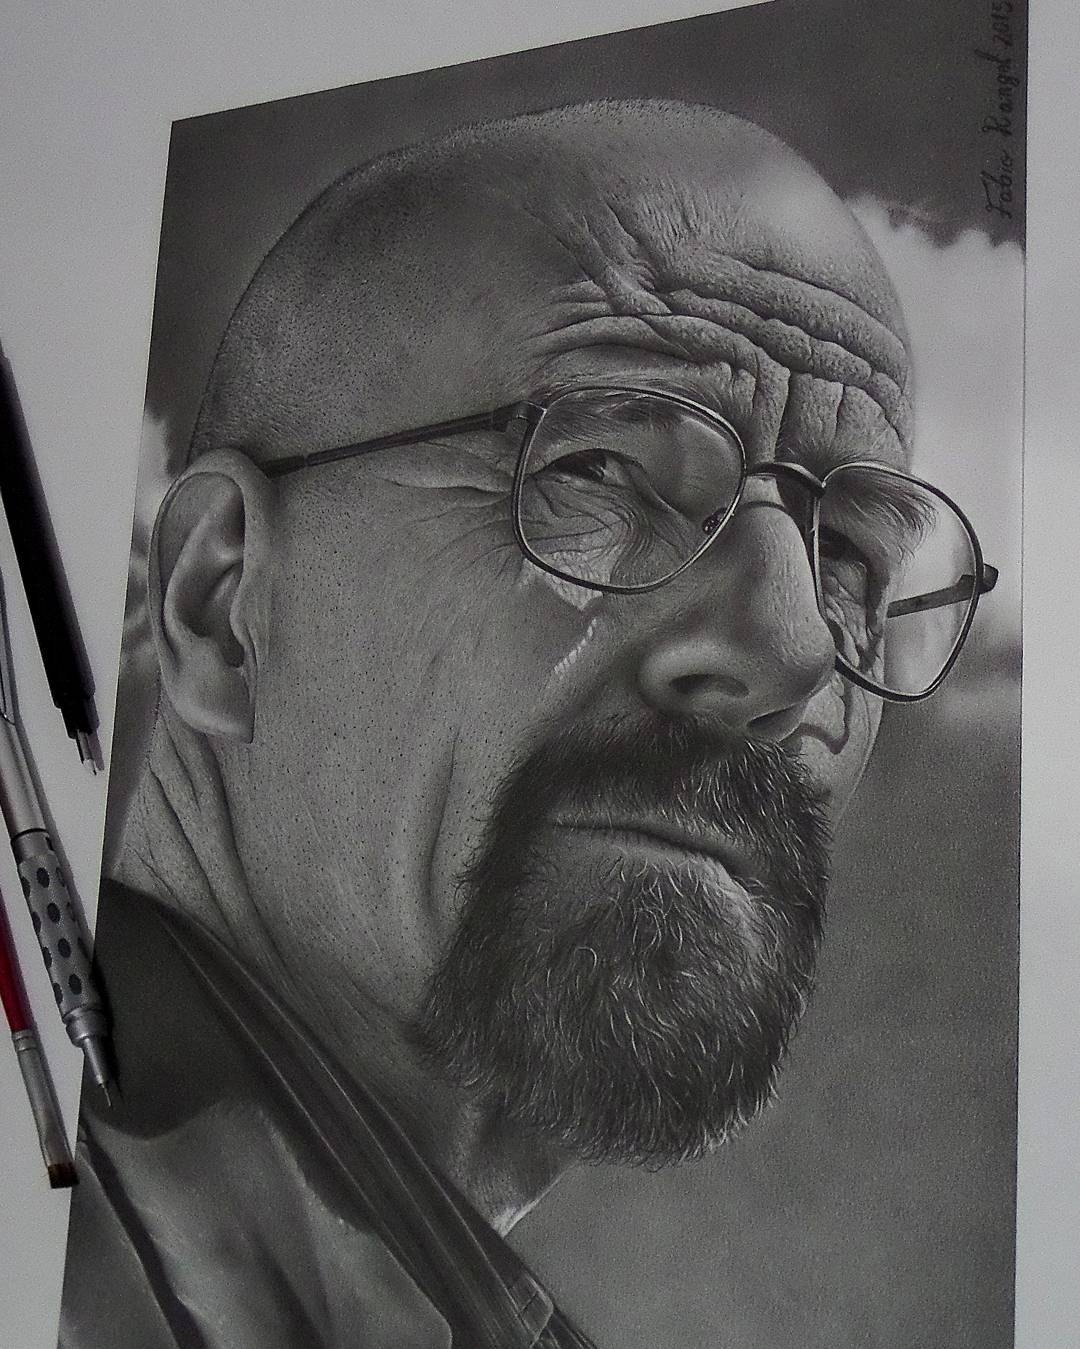 14-Walter-White-Breaking-Bad-Fabio-Rangel-Drawings-of-Protagonists-from-TV-and-Movies-www-designstack-co